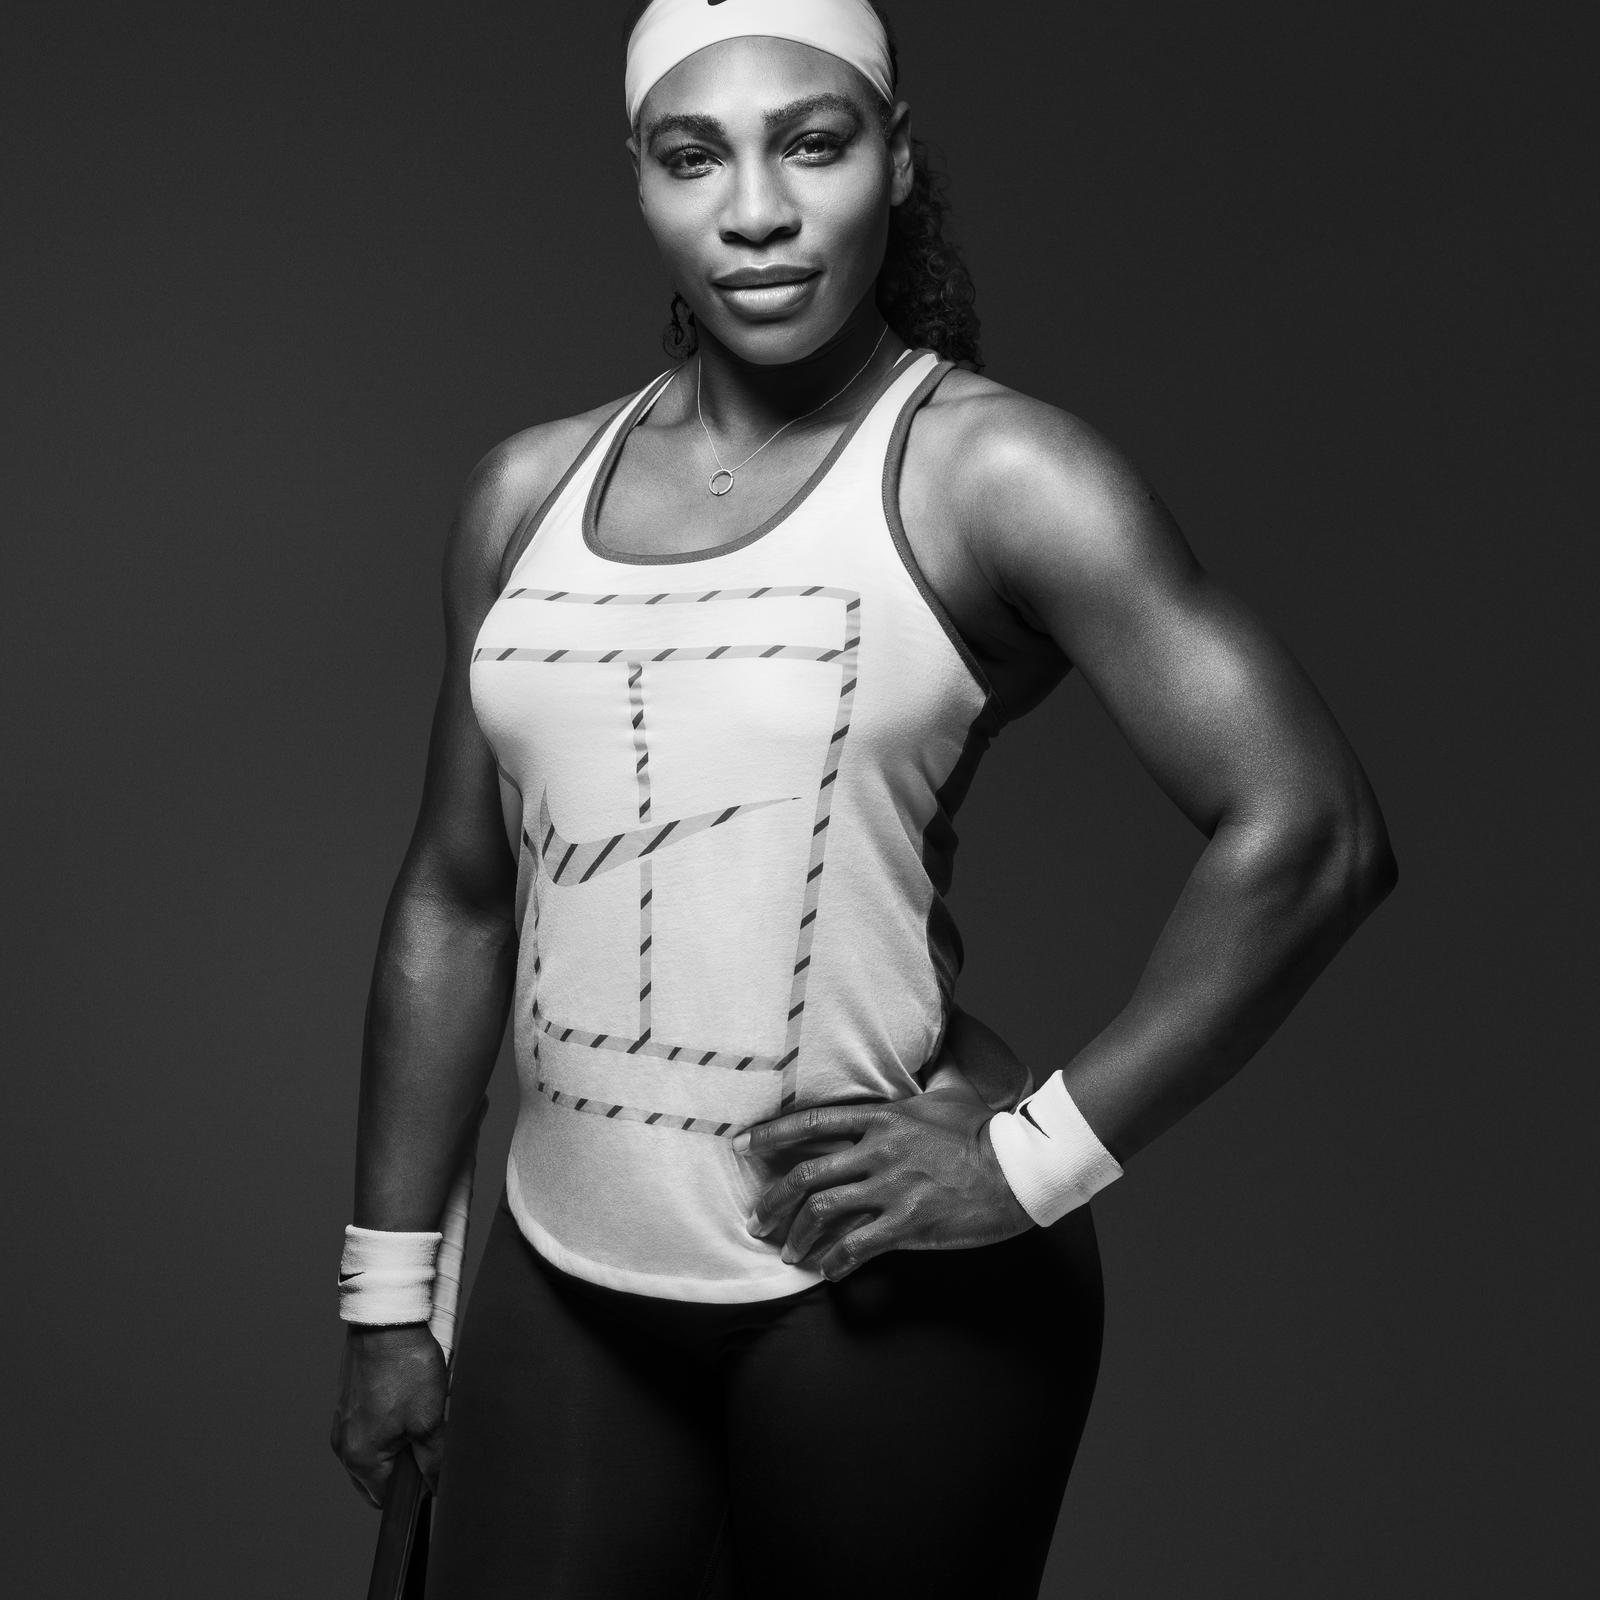 Nike zoomsquad serena williams square 1600 porto 2 square 1600